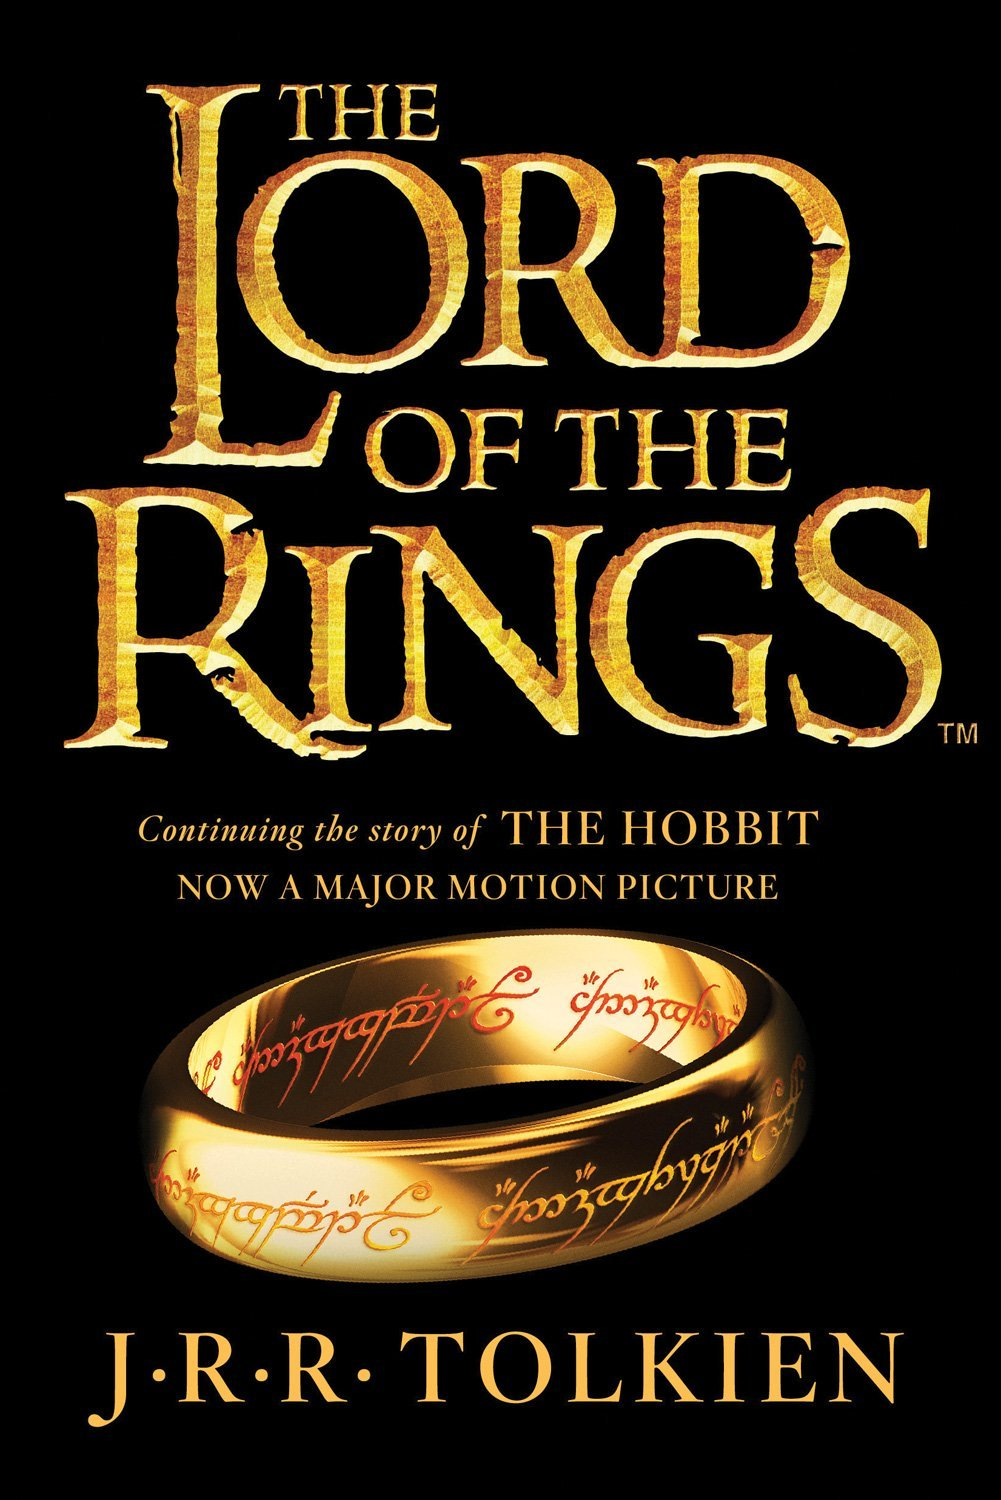 https://www.goodreads.com/series/66175-the-lord-of-the-rings